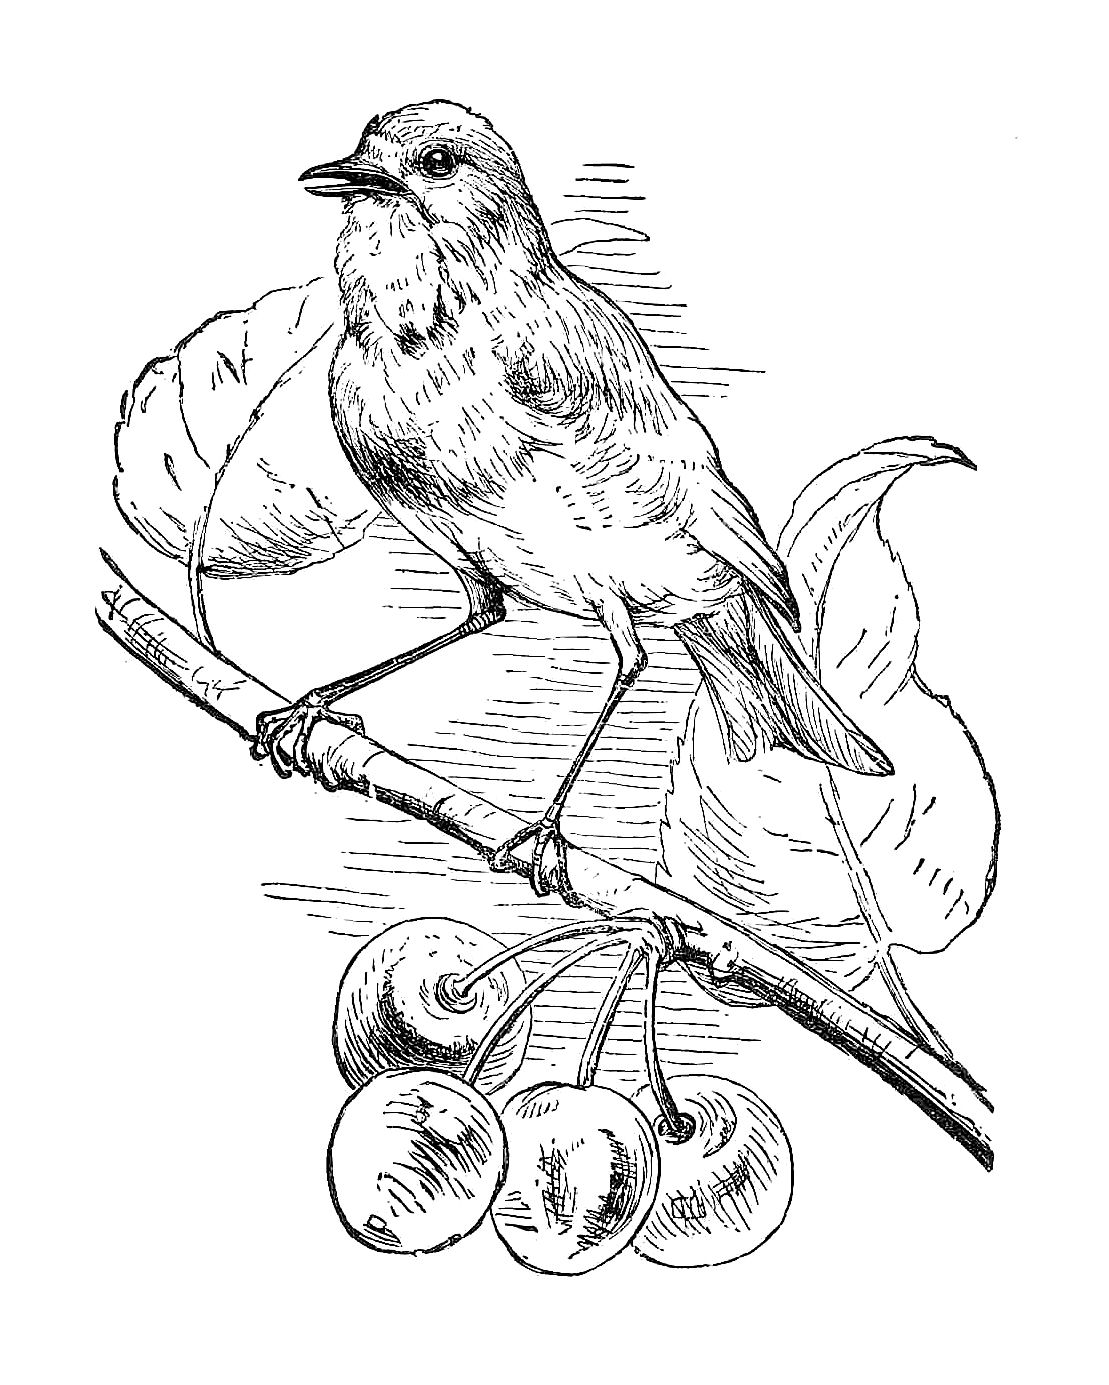 Clipart Of Birds Black And White: Antique Images: Free Black And White Illustration: Bird